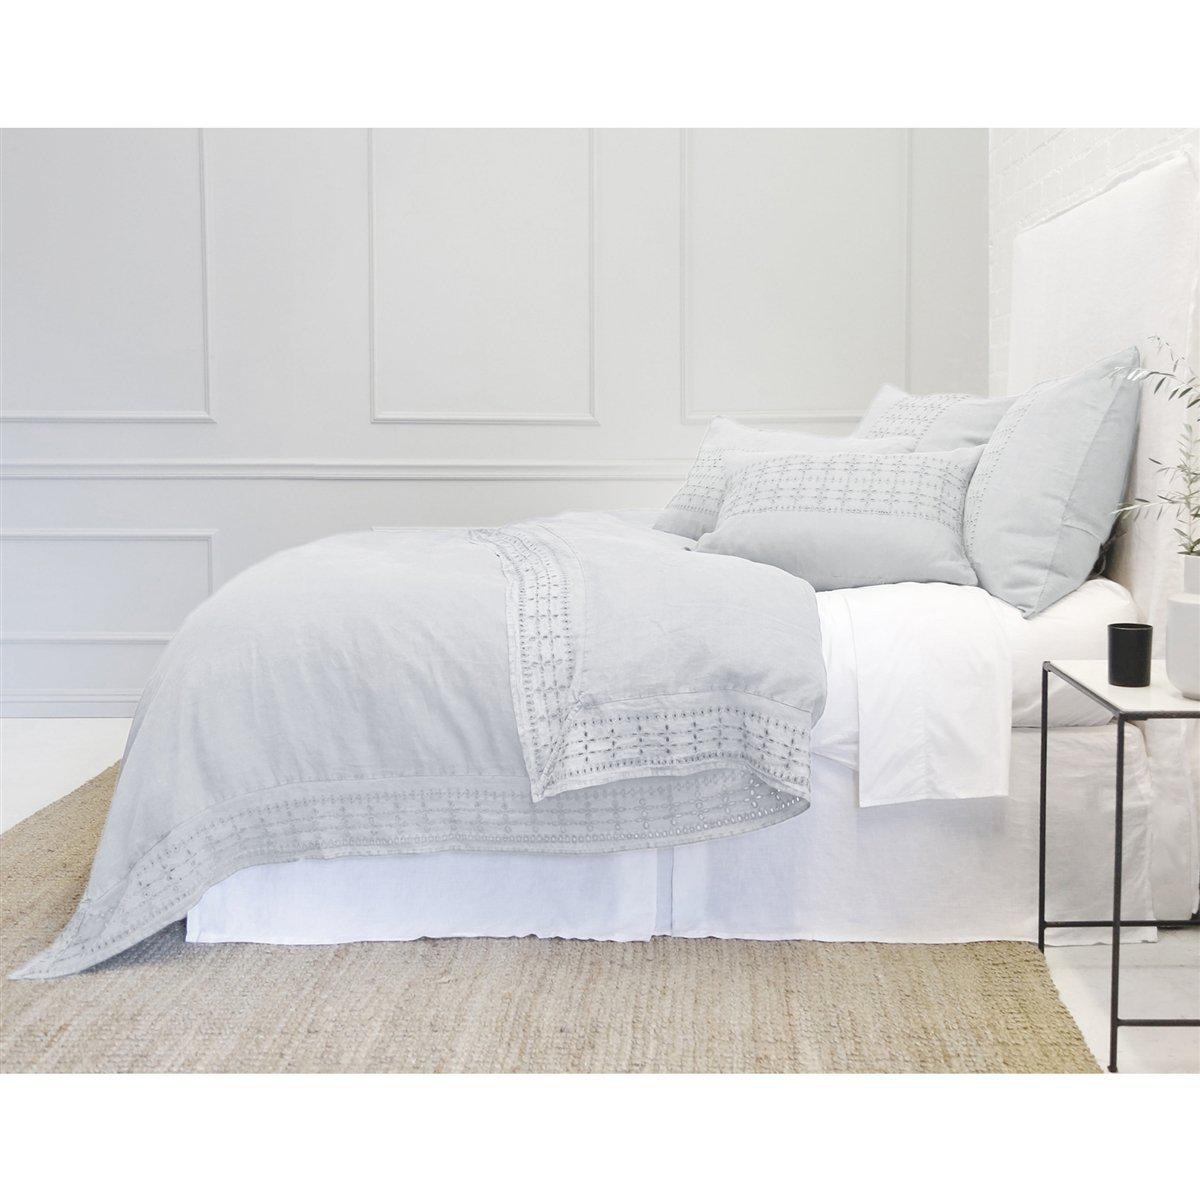 Layla Duvet by Pom Pom at Home-Bed & Bath-A Cottage in the City